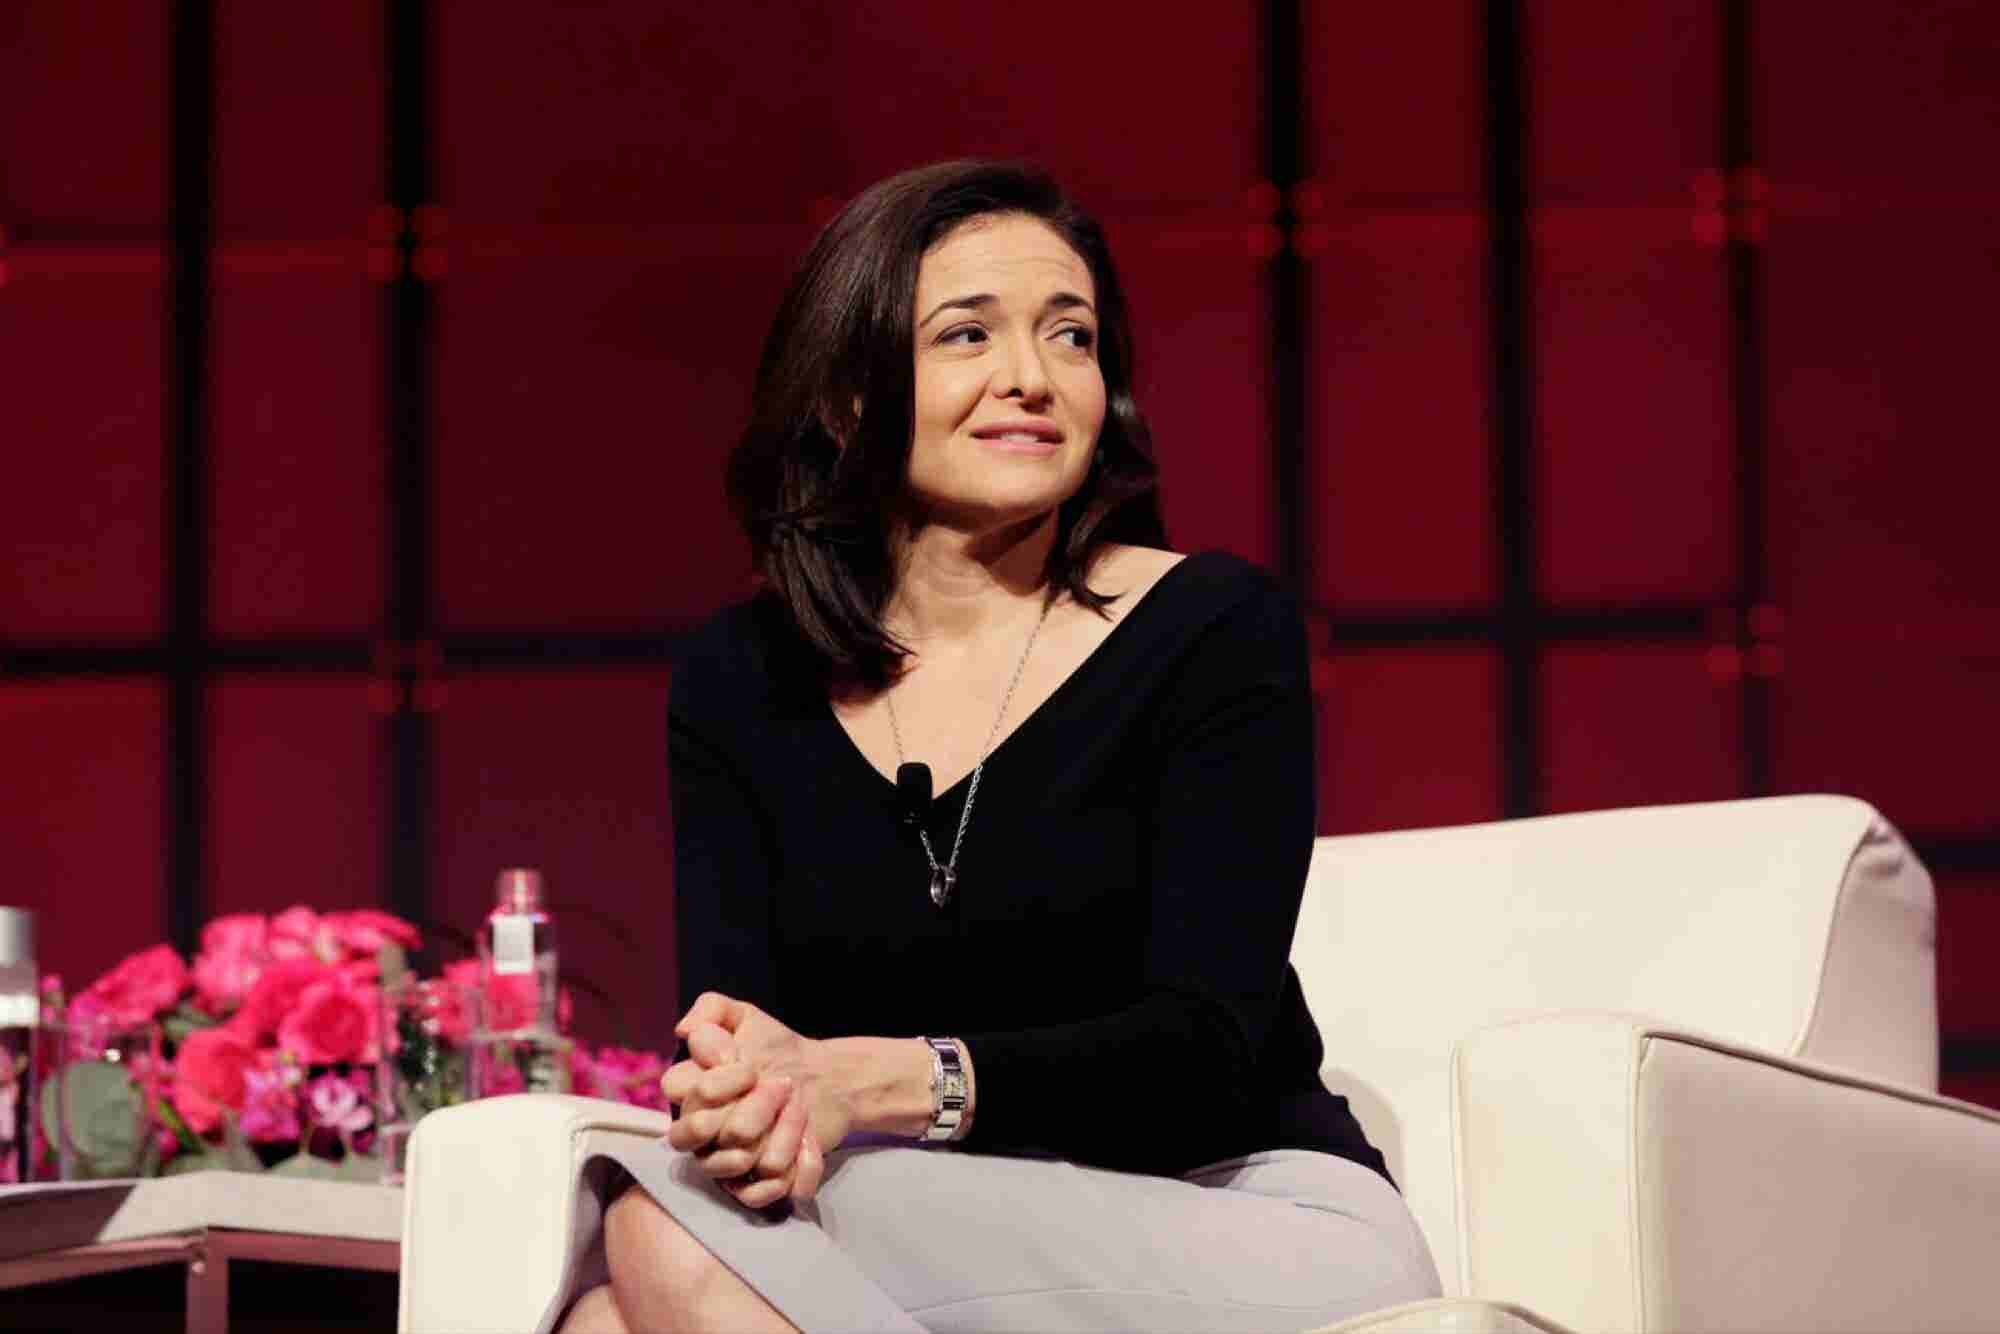 I Tried Sheryl Sandberg's 'Spiral-Notebook' Productivity Hack for 30 Days. Here Are My 5 Takeaways.